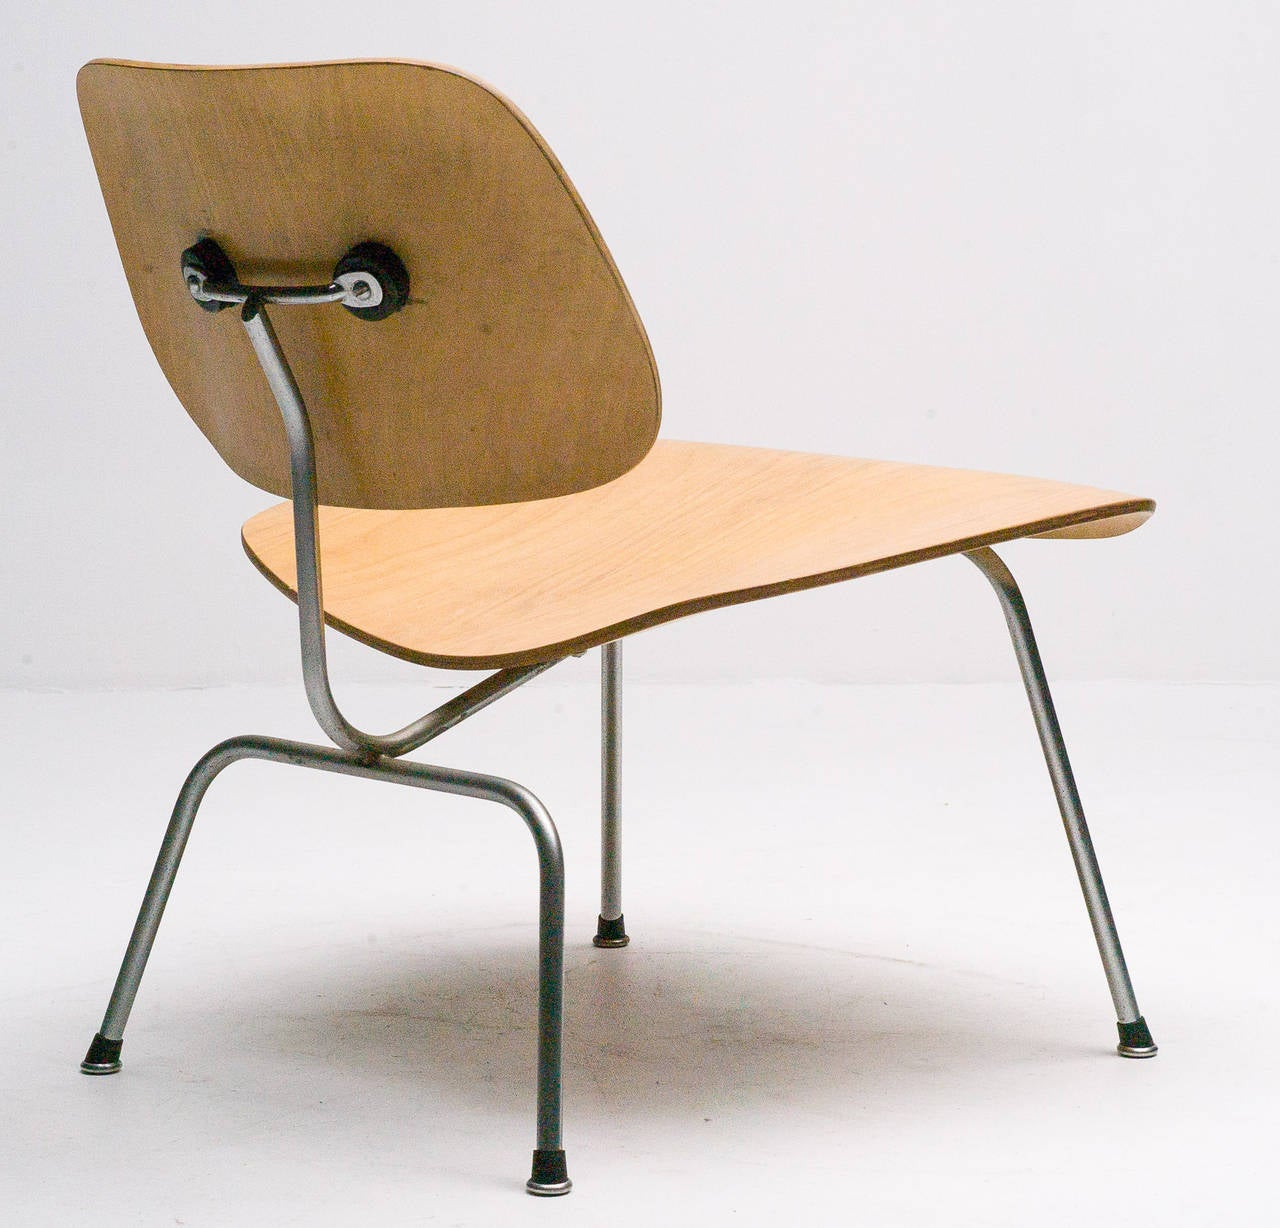 1949 original charles eames lcm in birch chair at 1stdibs. Black Bedroom Furniture Sets. Home Design Ideas